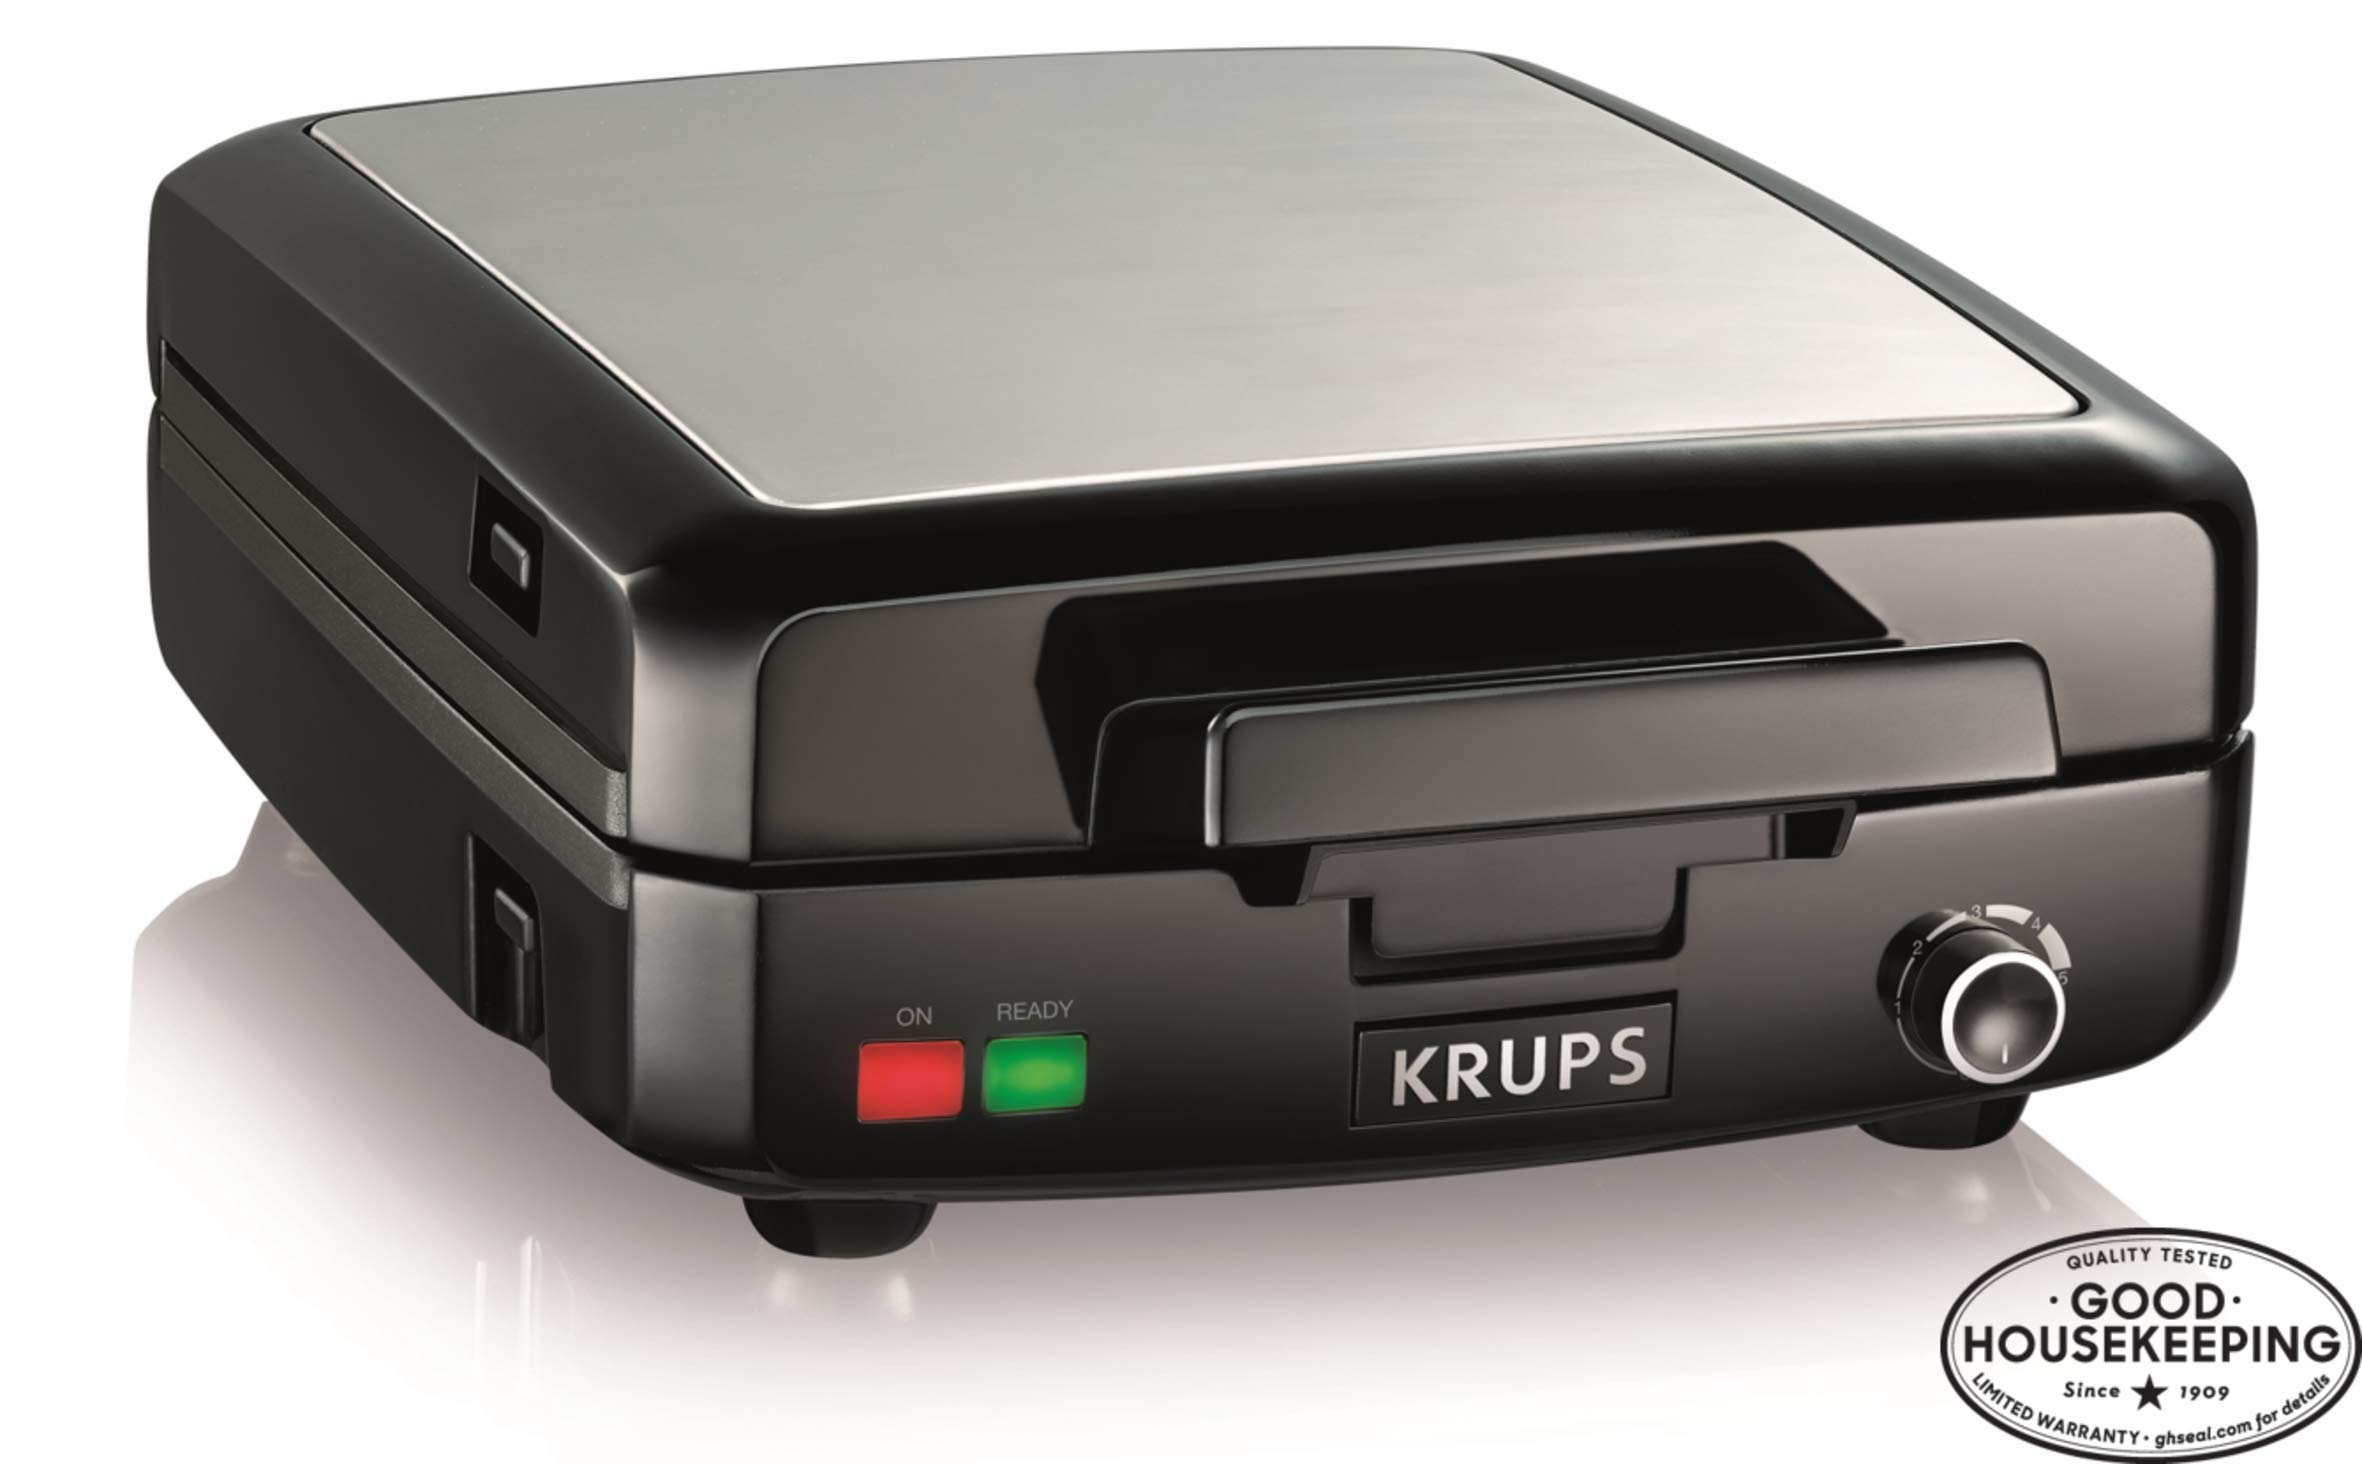 KRUPS Belgian Waffle Maker, Waffle Maker with Removable Plates, 4 Slices, Black and Silver by KRUPS